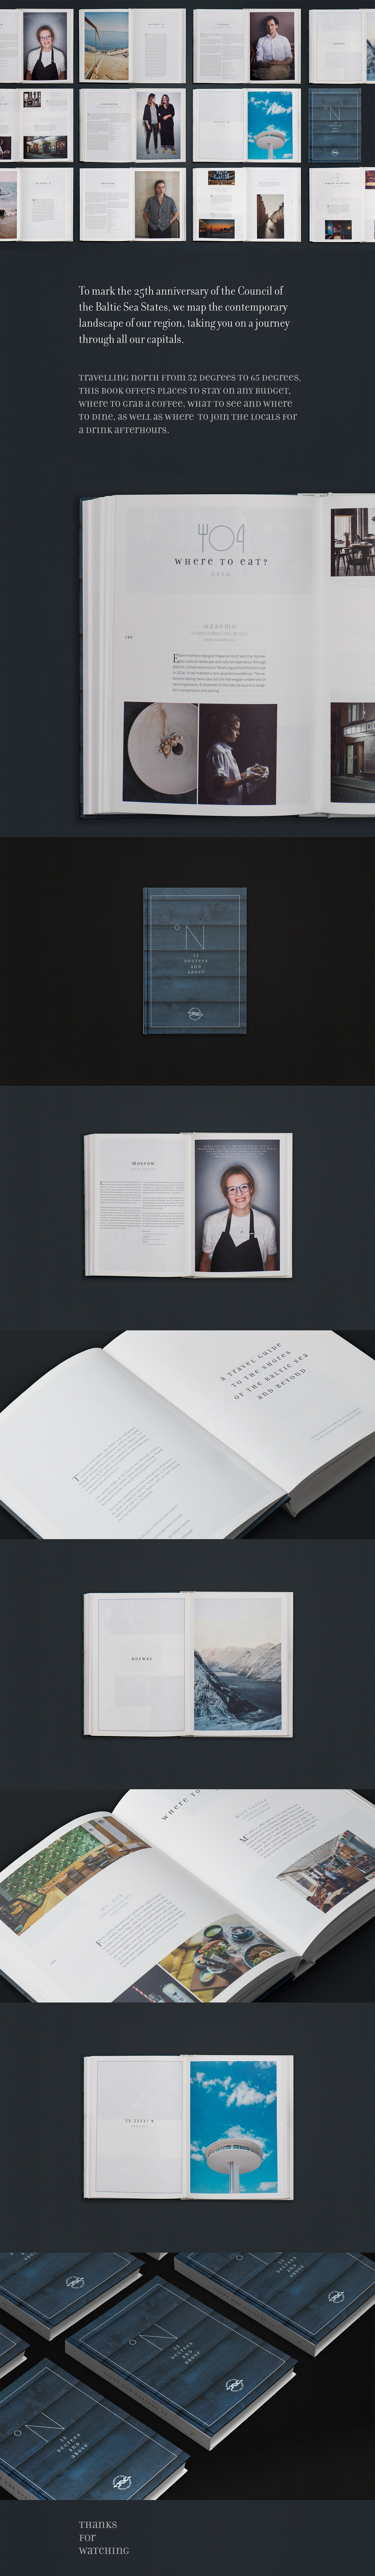 NGO Layout book Guide print editorial silver graphic photo